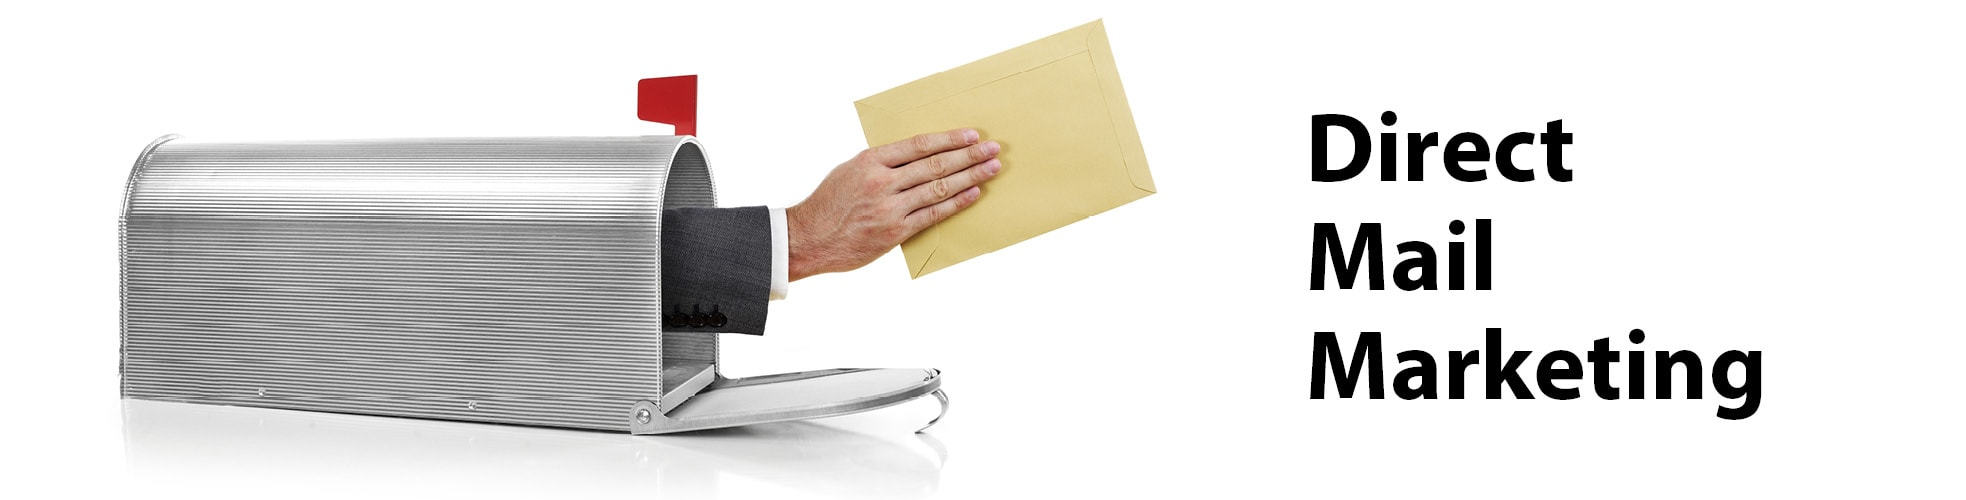 direct mail marketing | LMS Solutions